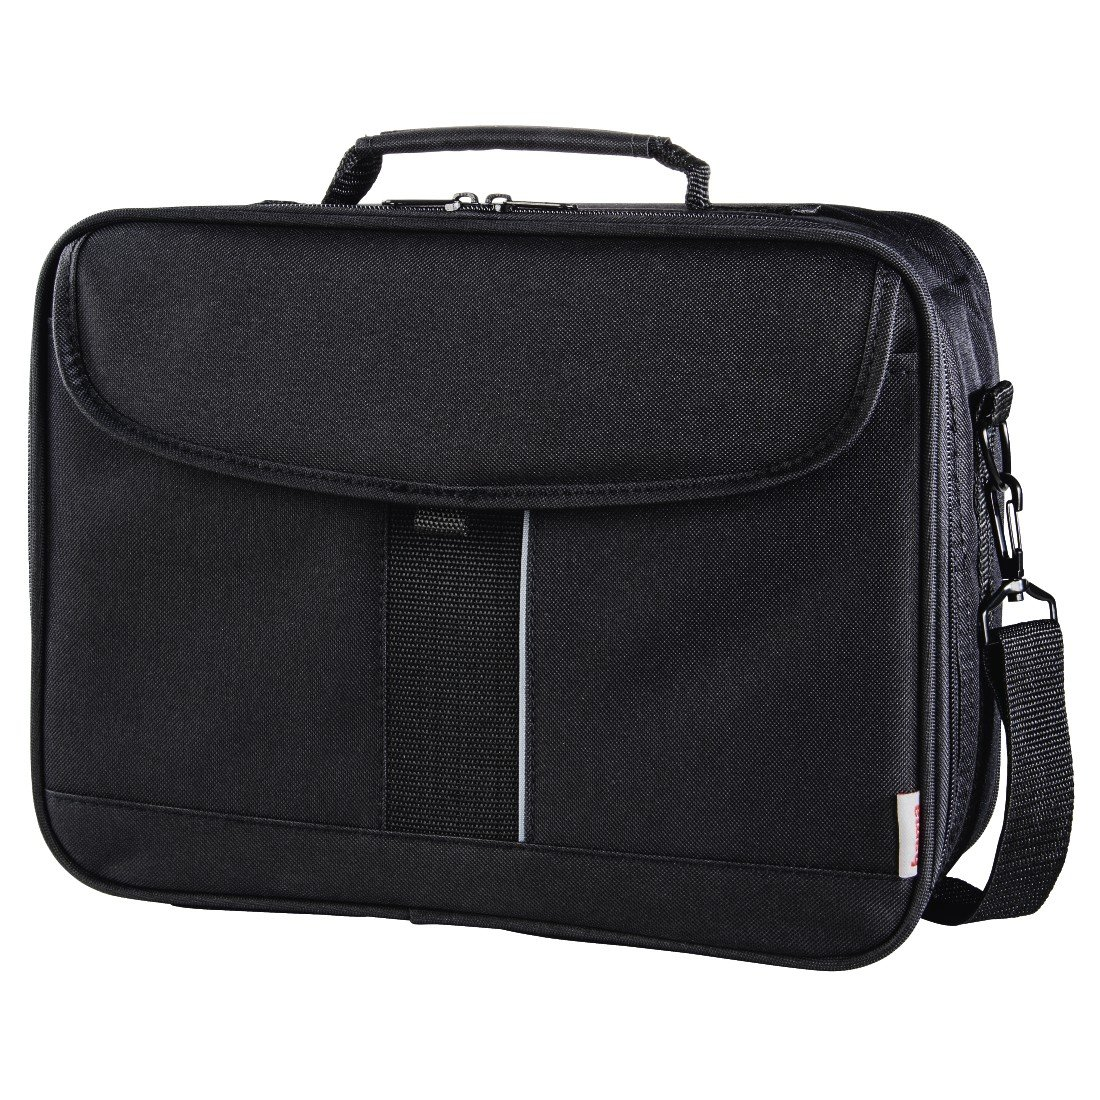 Hama Sportsline Bag for Projector and Accessories - Large   B004LQ1PLW